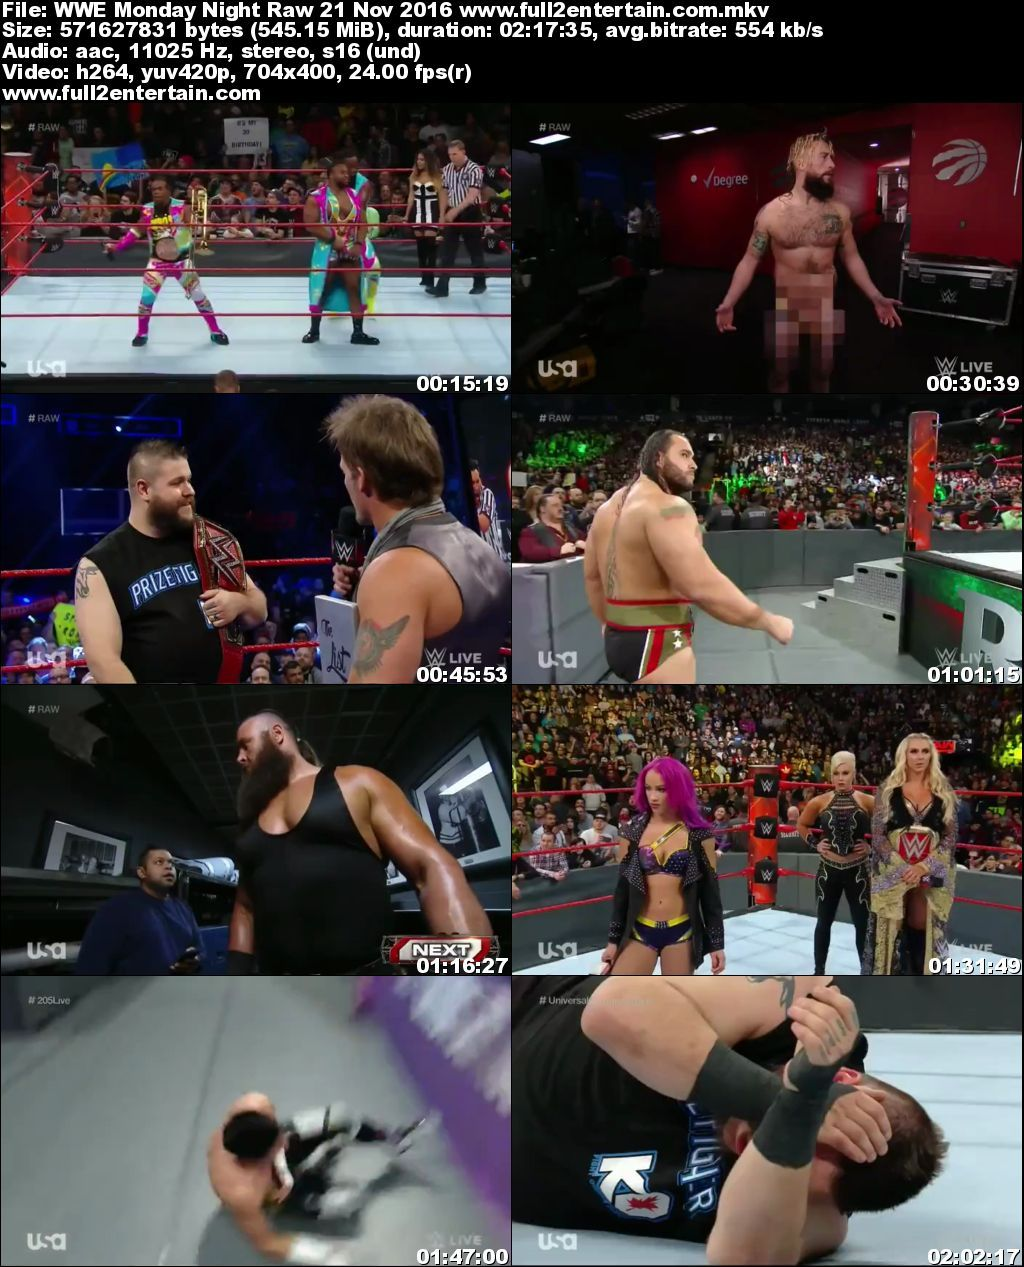 WWE Monday Night Raw 21st November 2016 Full Show Download - 720p Mkv